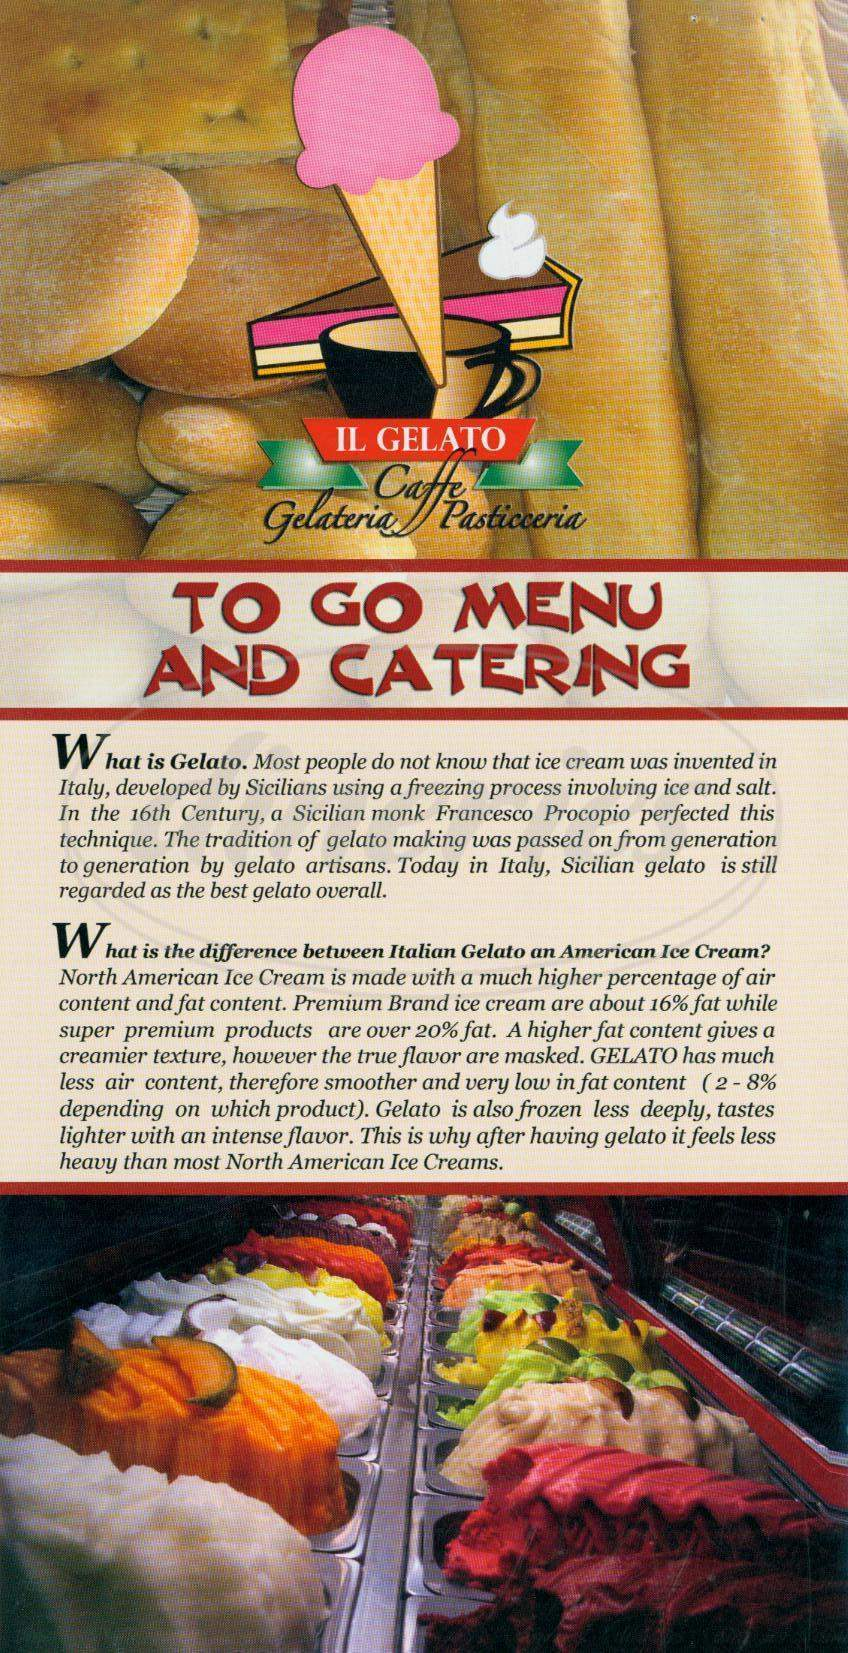 menu for Il Gellato